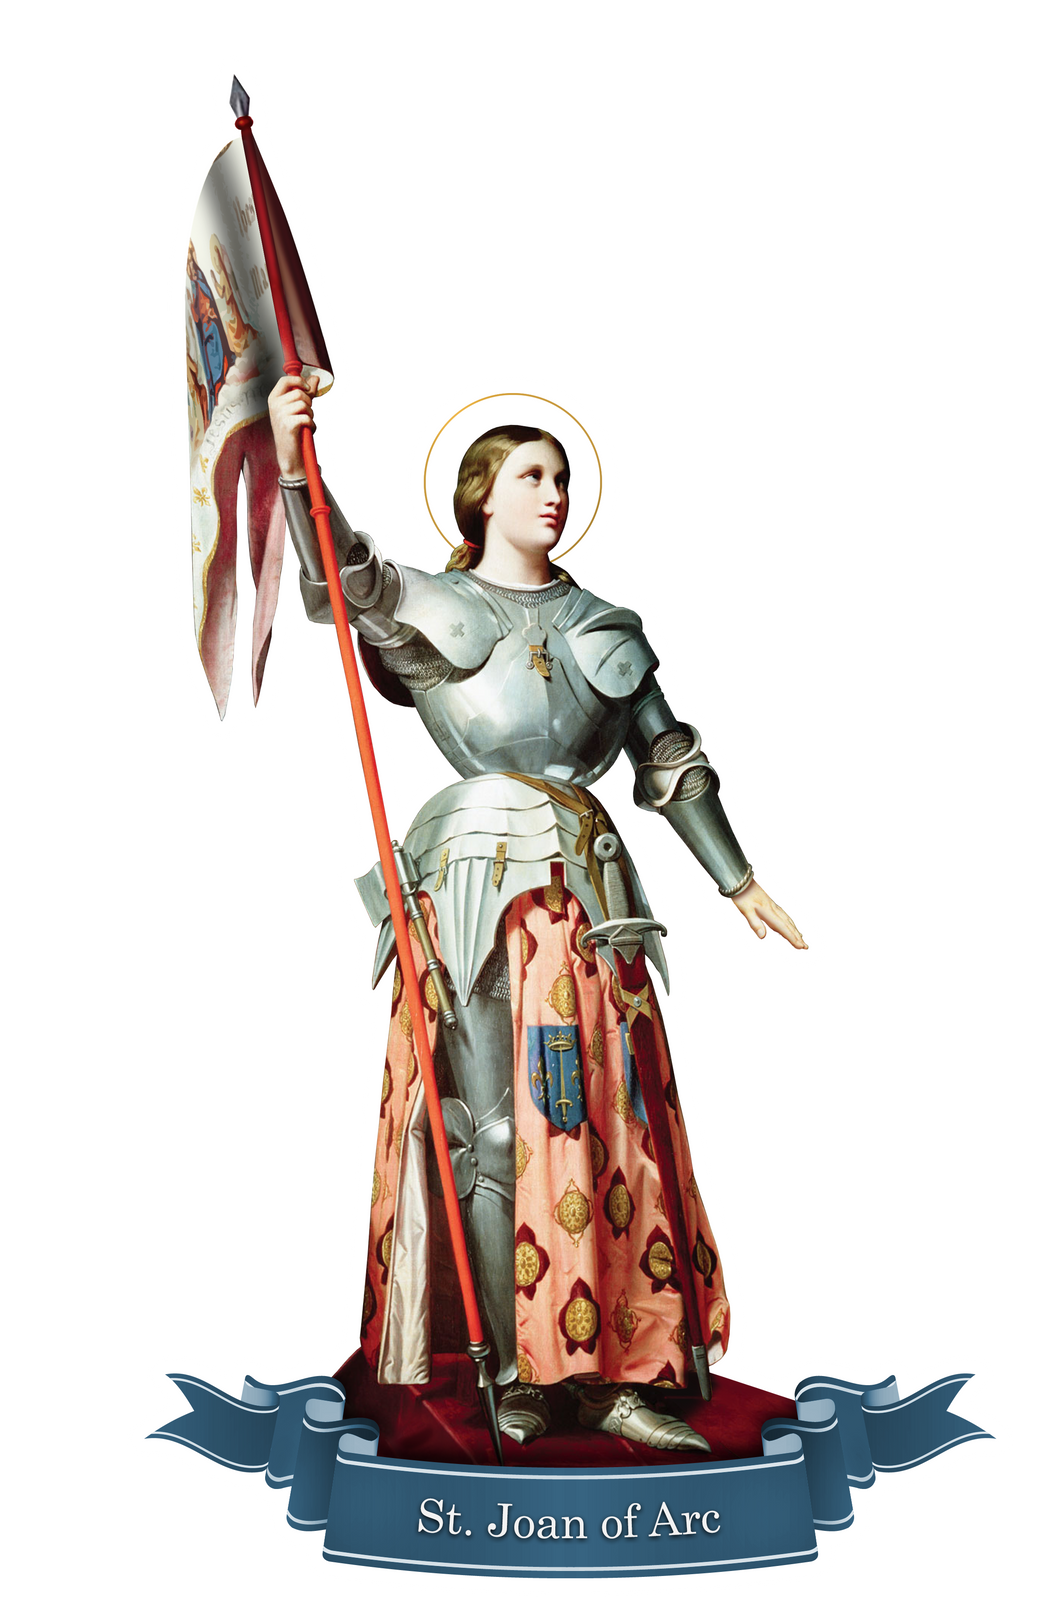 St. Joan of Arc Decal